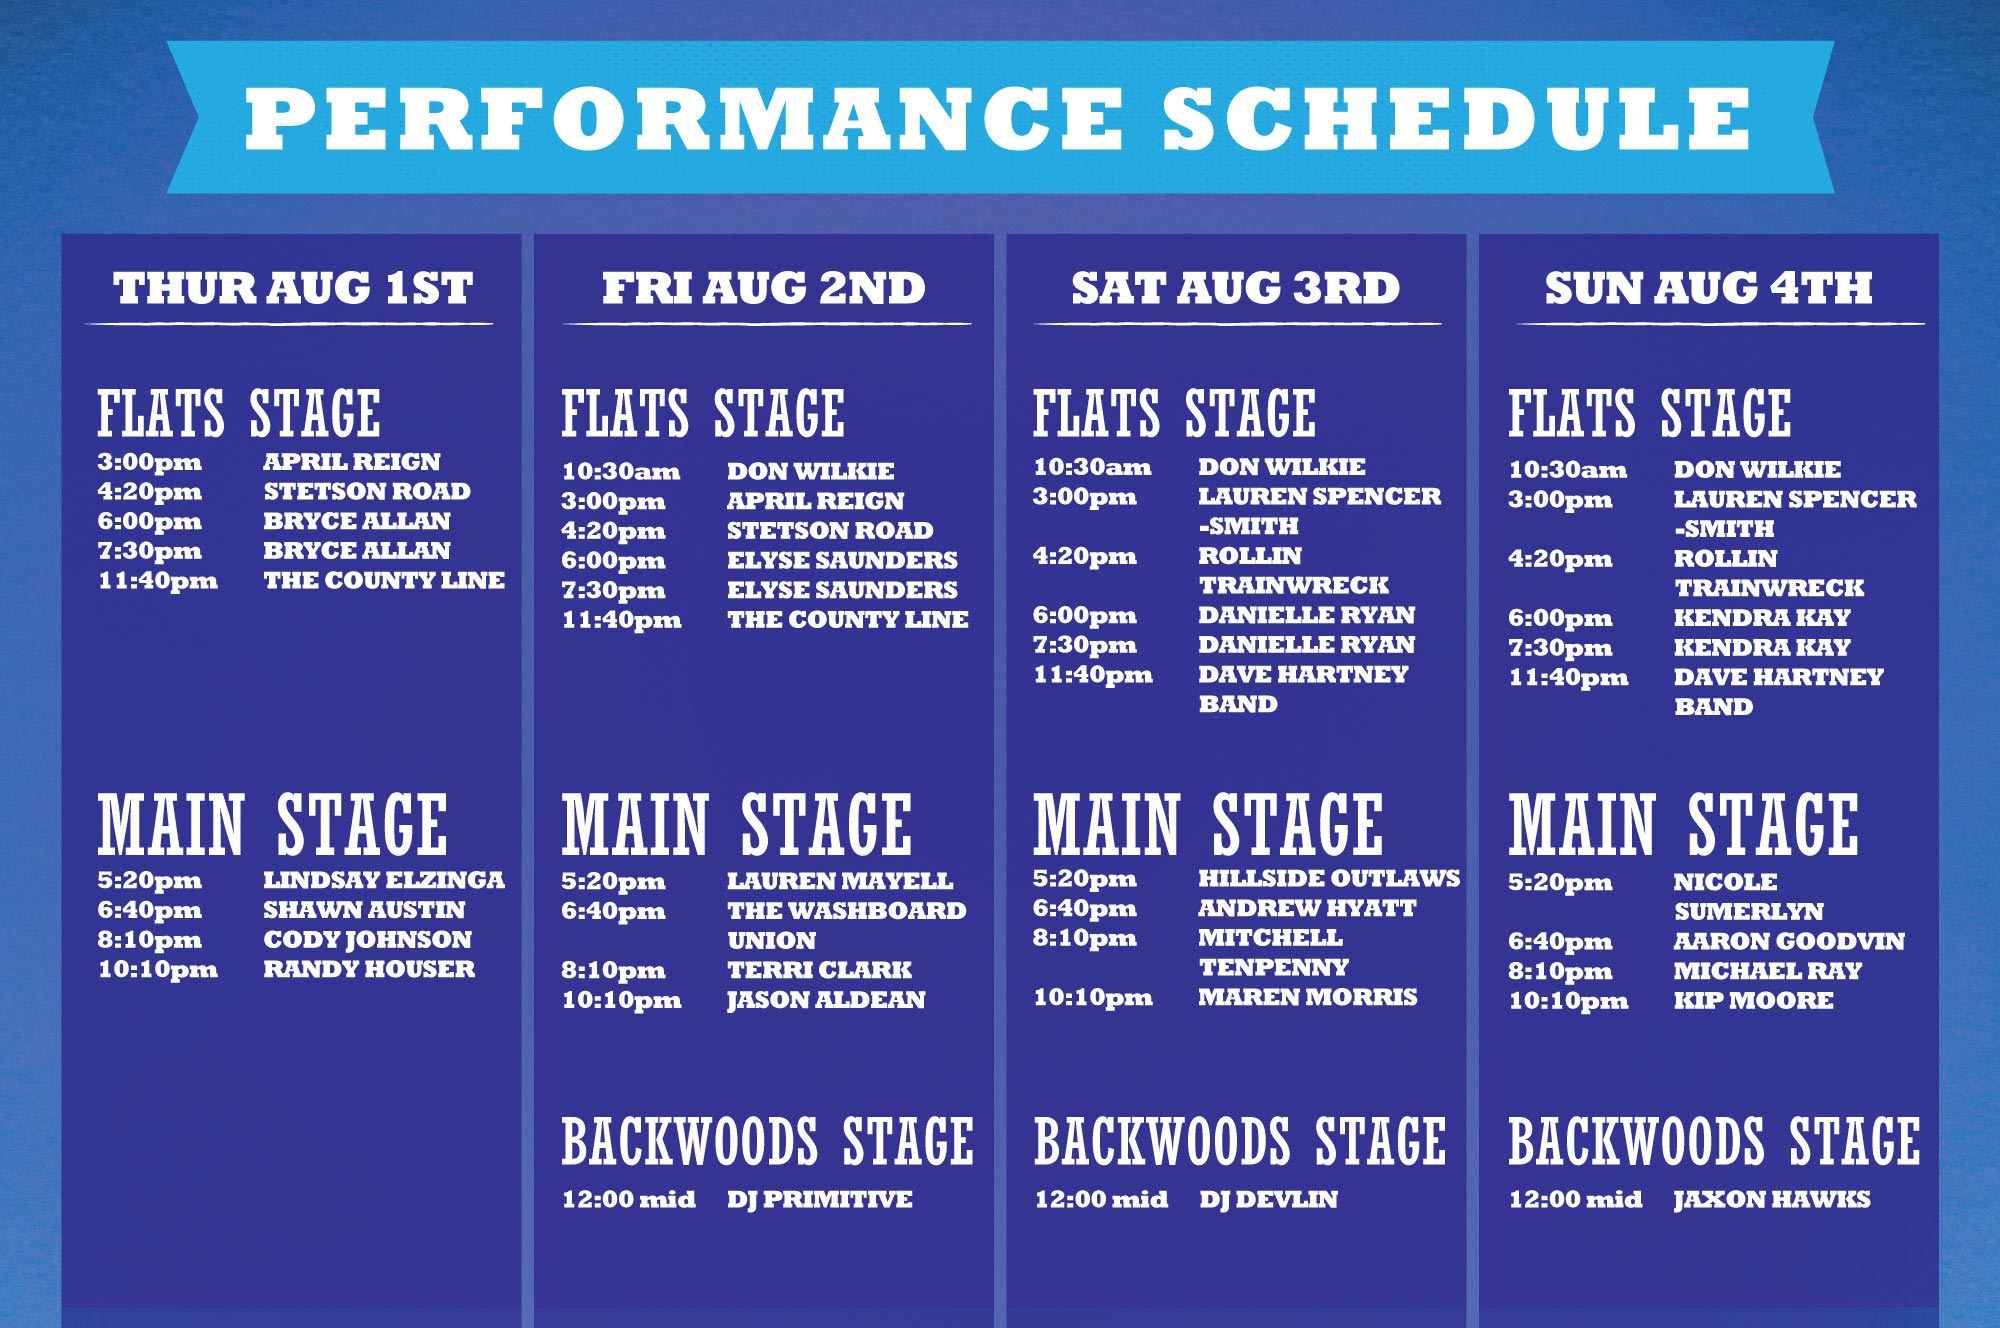 Main Stage Schedule